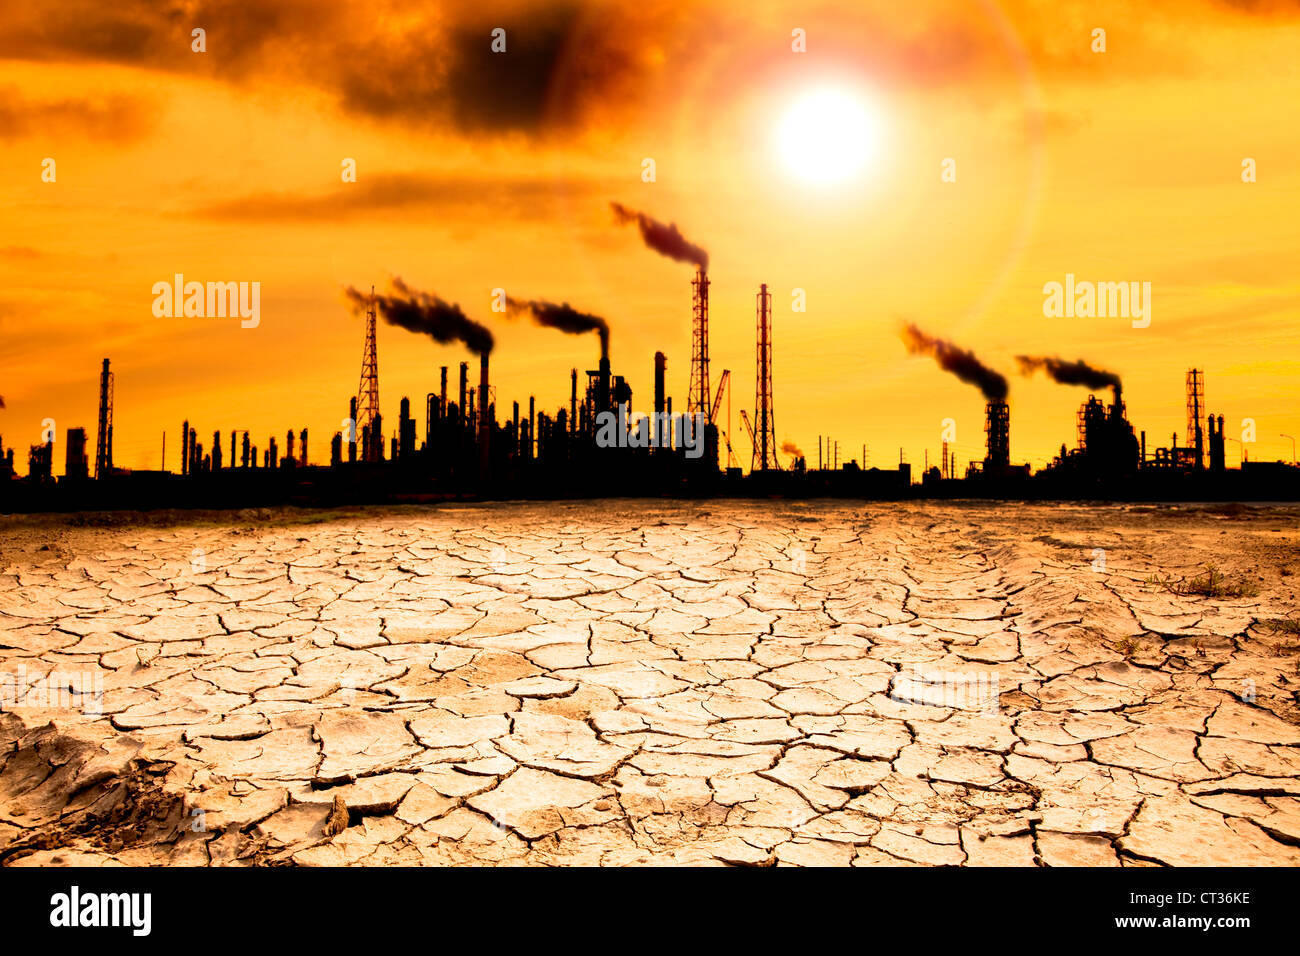 Refinery with smoke and global warming concept - Stock Image